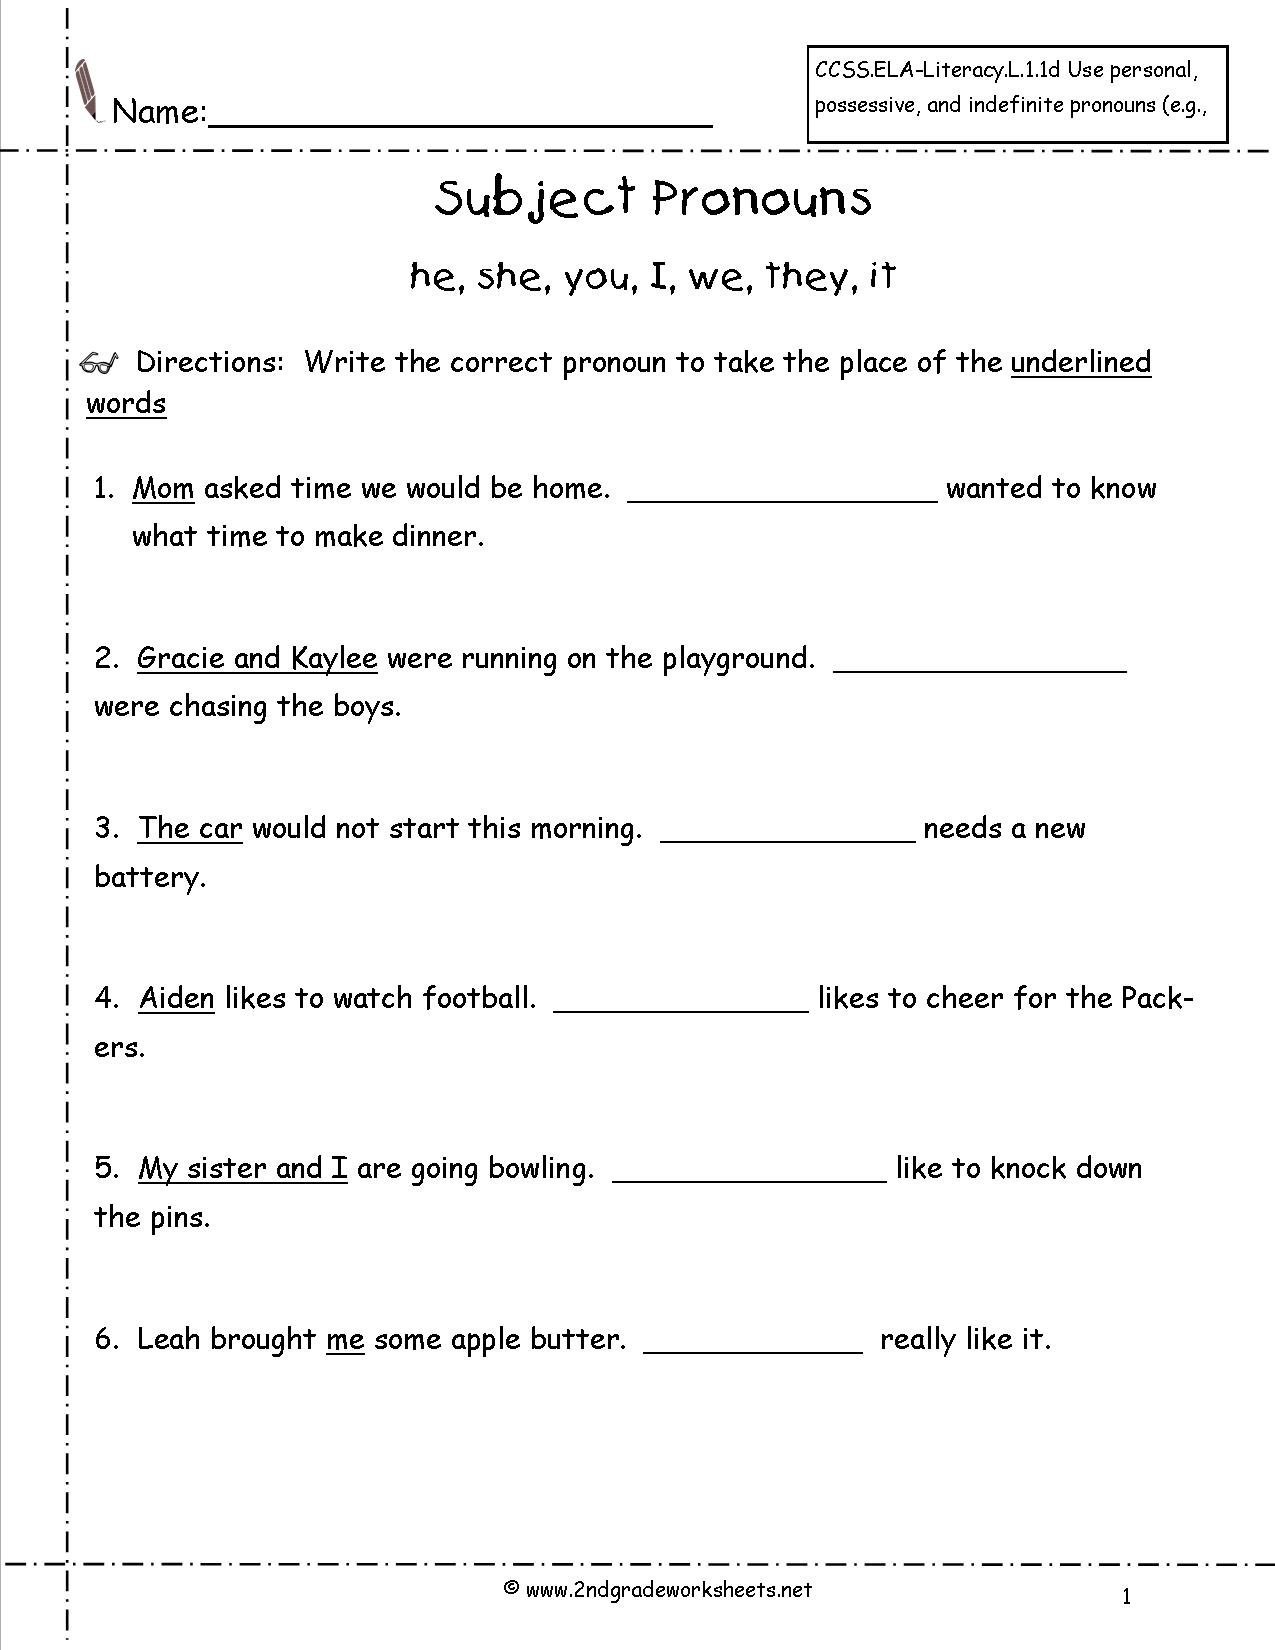 Pronouns Nouns Worksheets From The Teacher's Guide Together With Nouns And Pronouns Worksheets